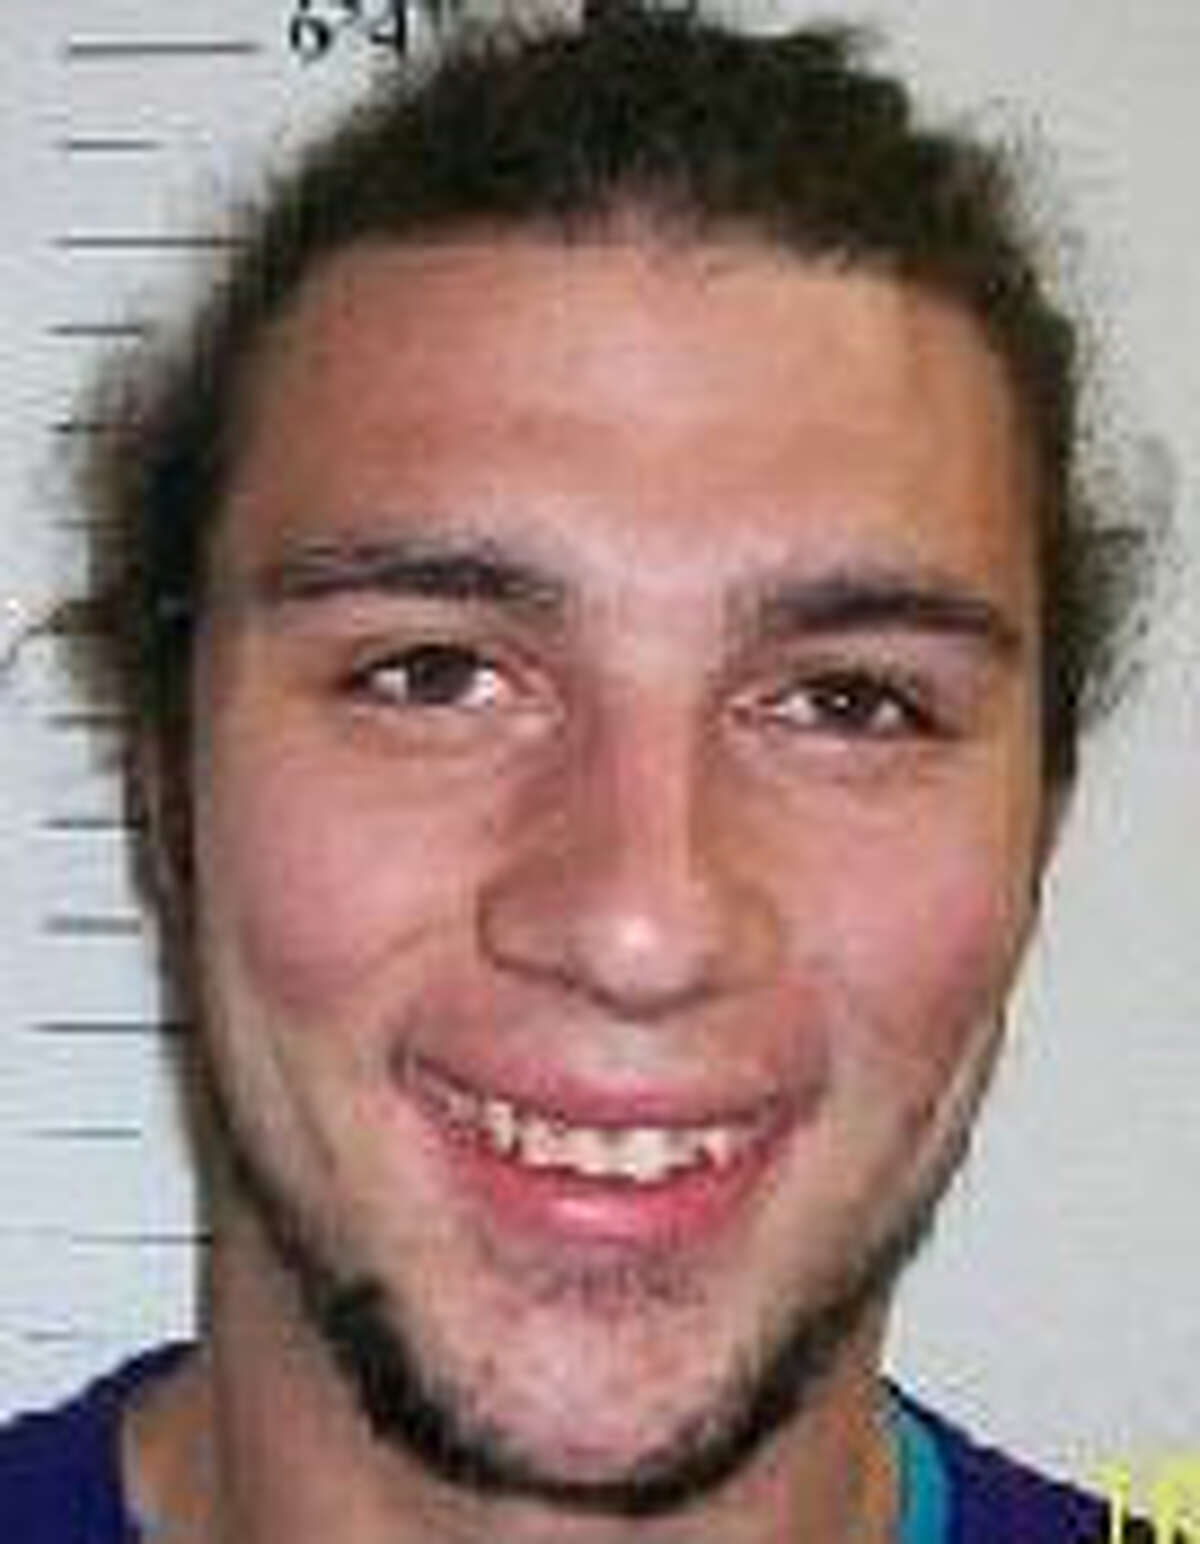 Cameron James Smith, a 23-year-old man, was previously convicted of assault in Snohomish County. A warrant for his arrest was issued July 12, 2013. Anyone with information can contact the Department of Corrections at 866-359-1939 or by visiting doc.wa.gov.